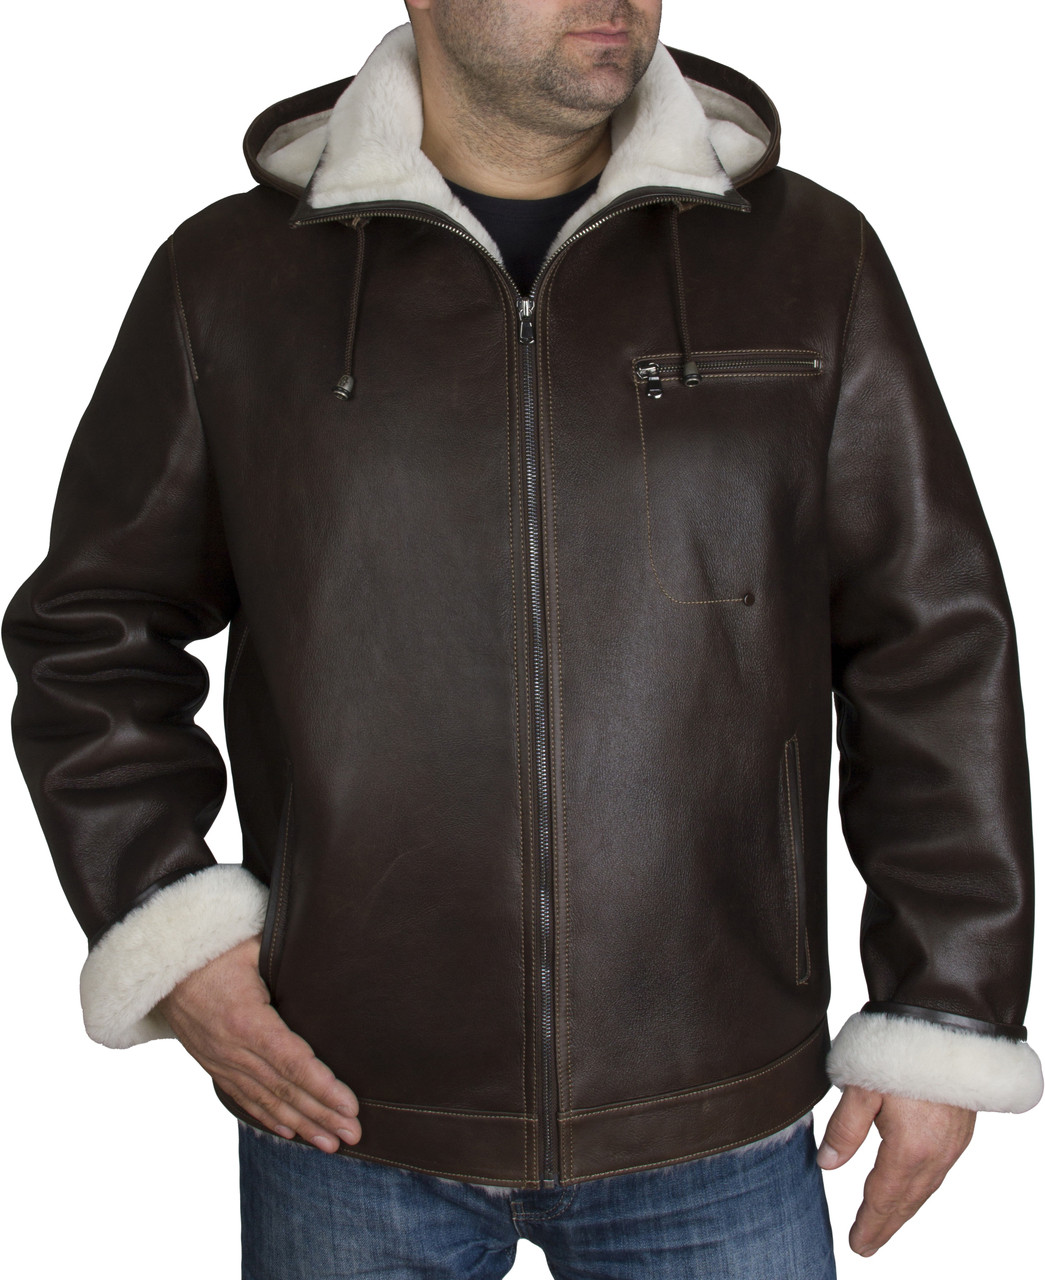 4db44a44d7881 Zavelio Men s Genuine Shearling Sheepskin Aviator Bomber Hooded Winter  Jacket - Brown front. Loading zoom